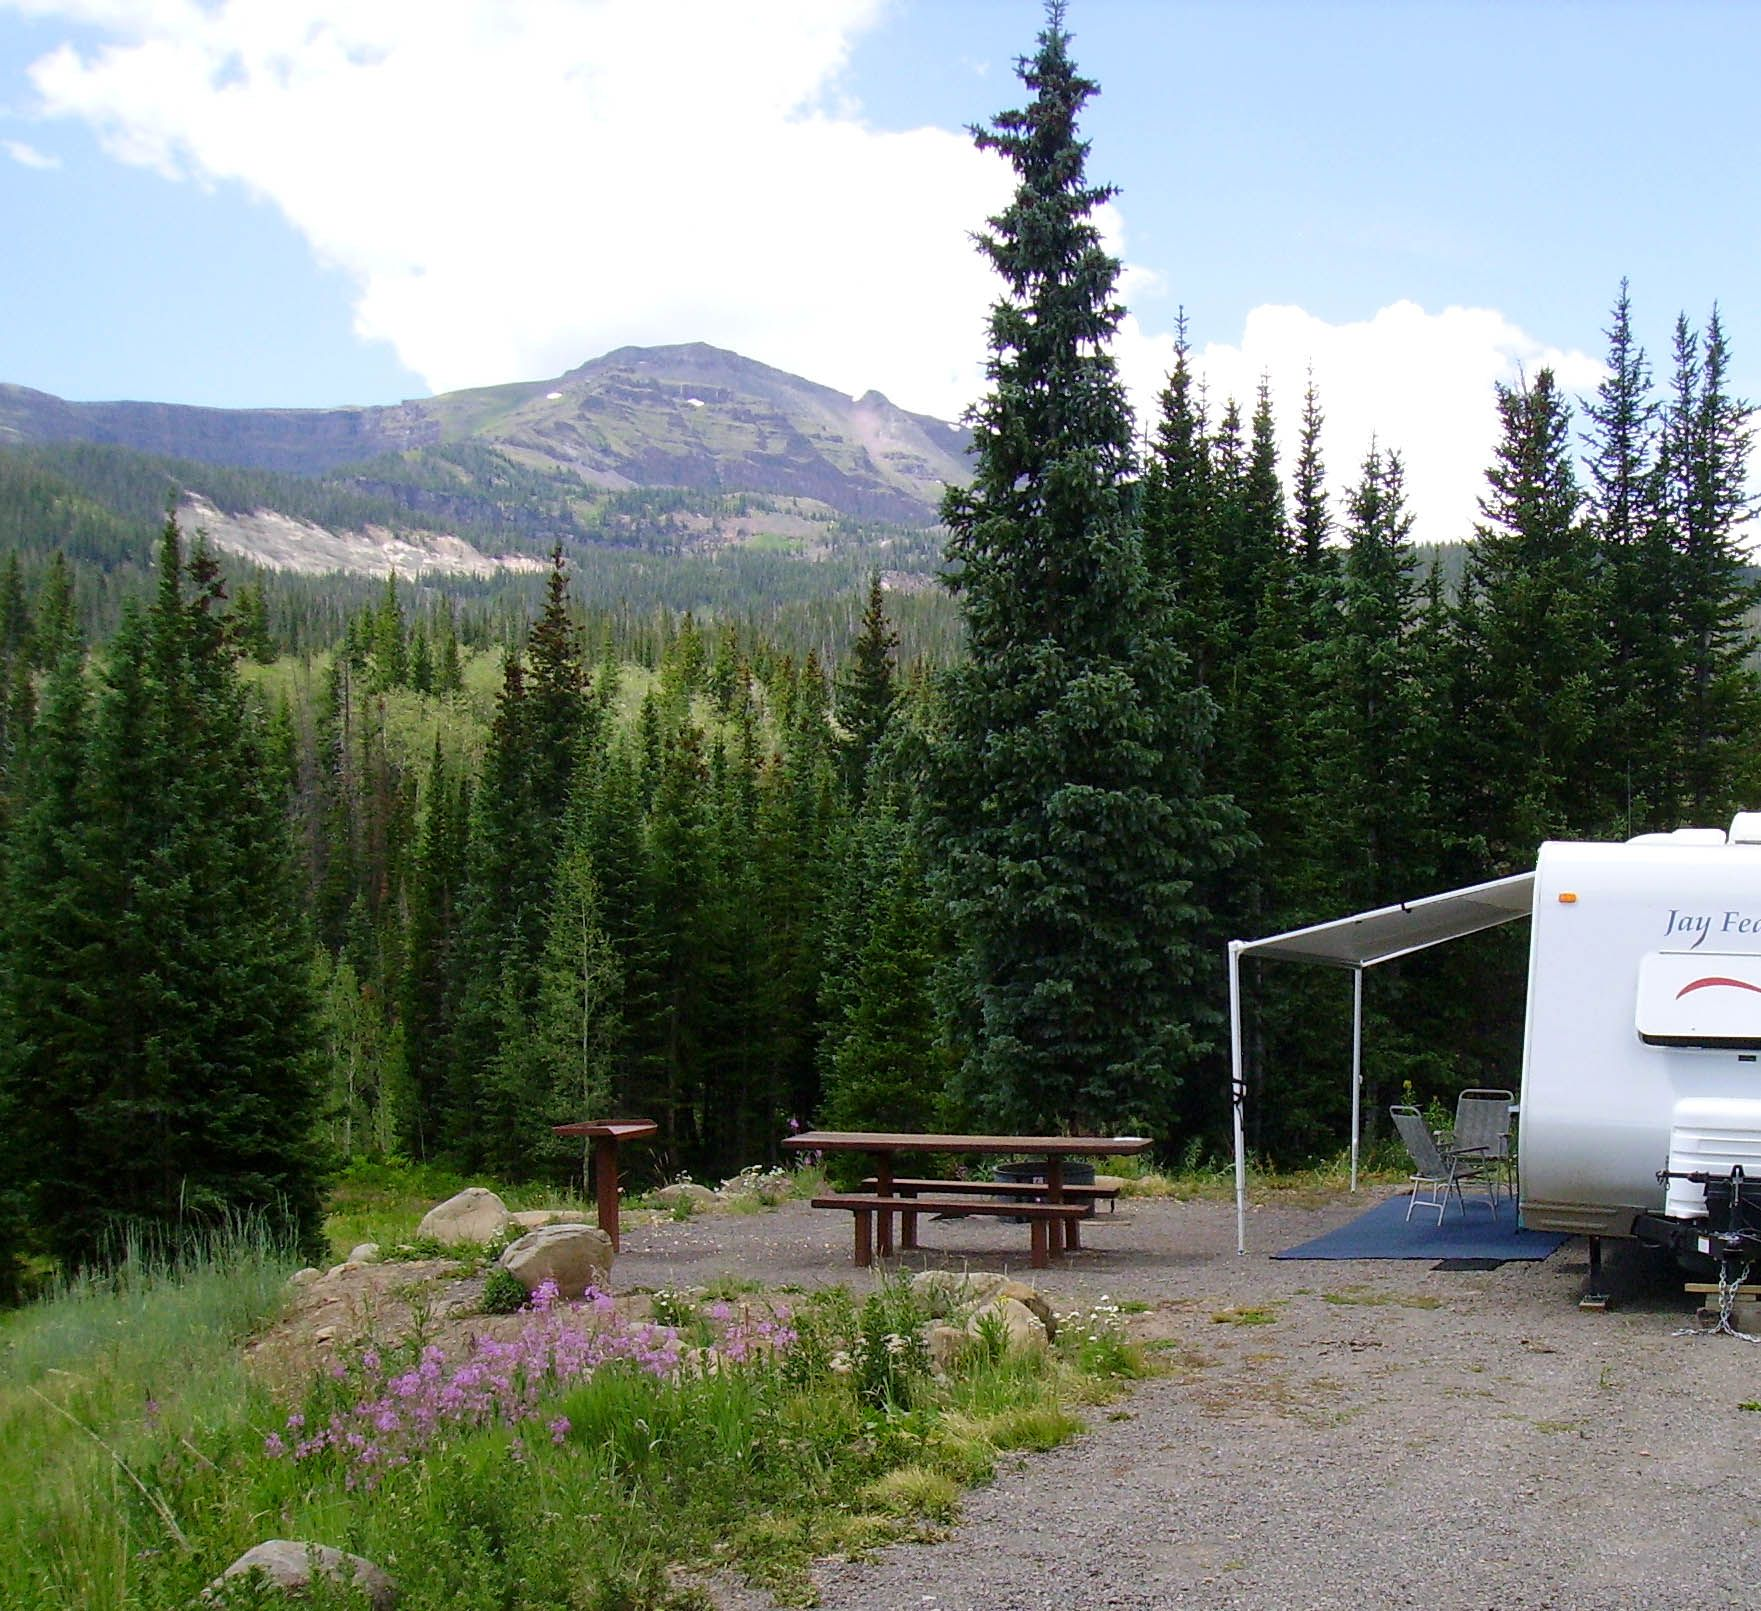 Photo of camper and Flat Top Mountain from Bear Lake